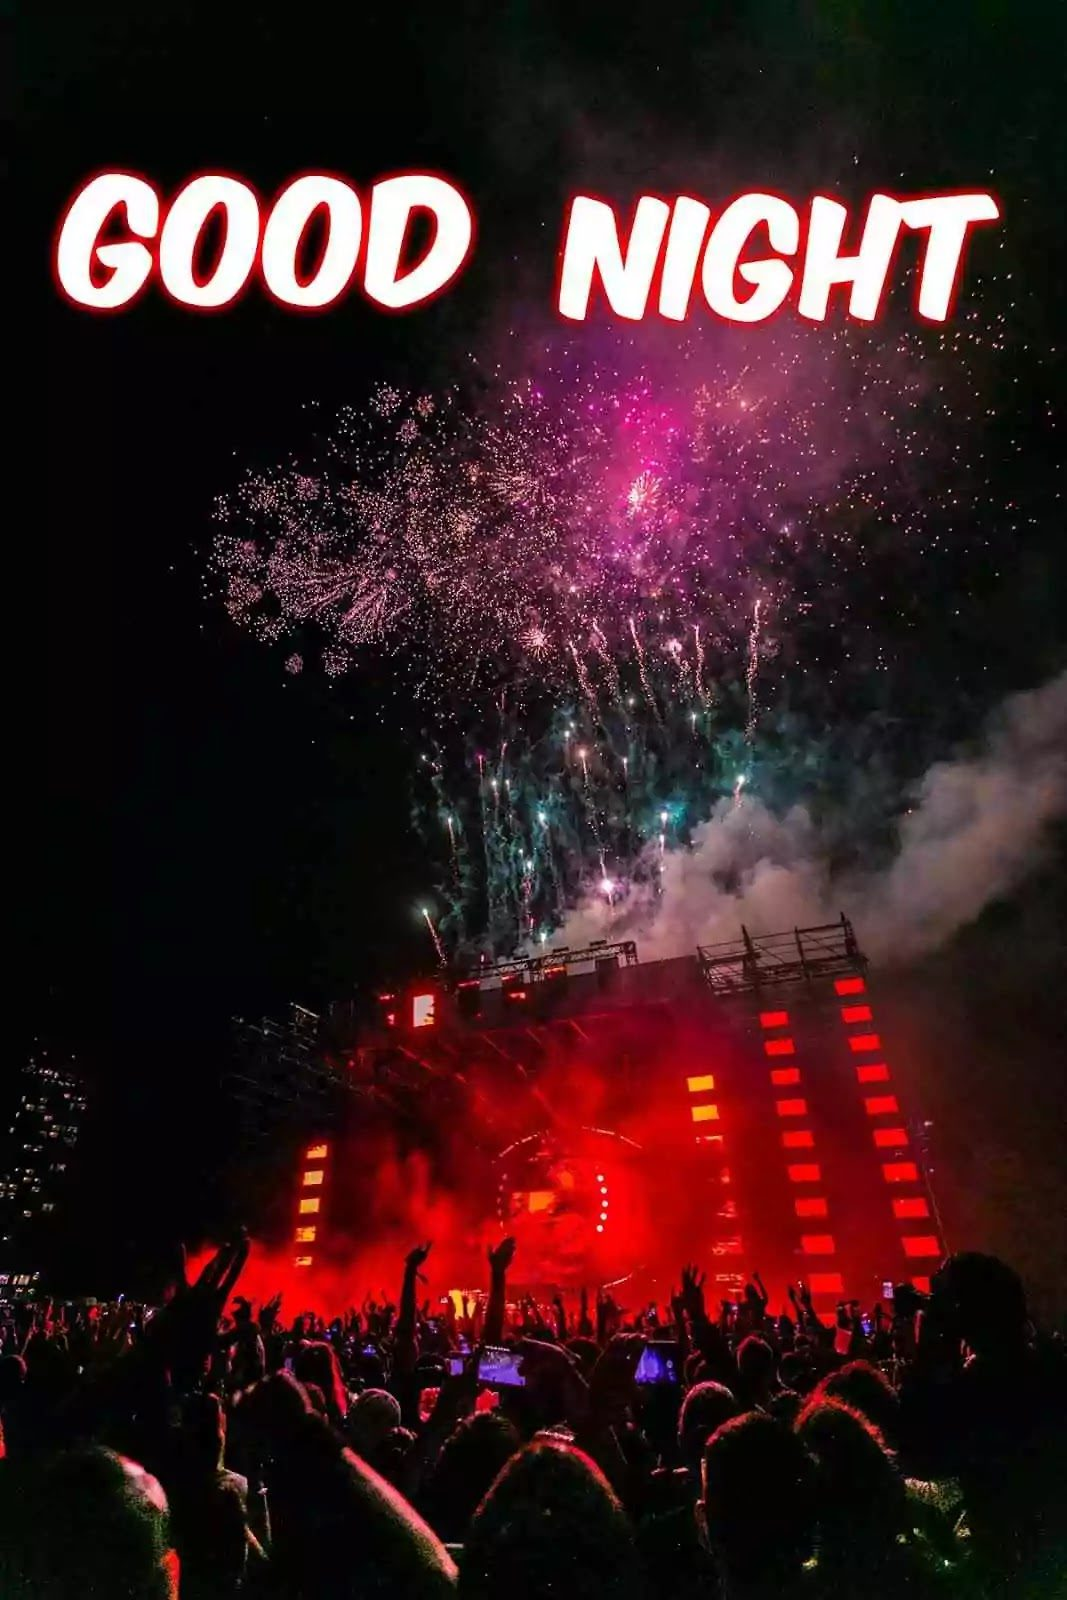 Beautiful Goodnight Wallpapers free download 5